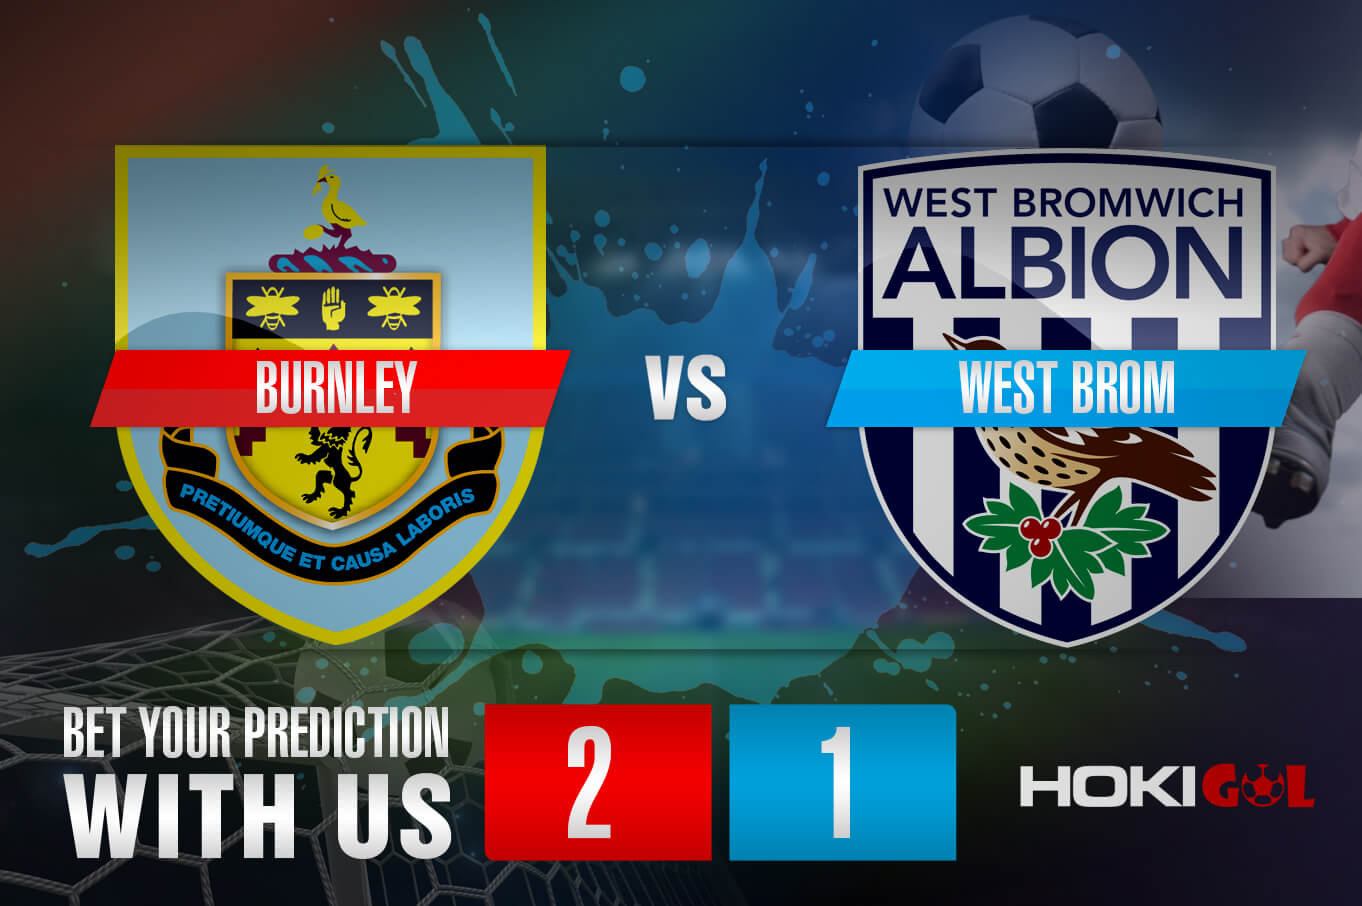 Prediksi Bola Burnley Vs West Brom 20 Februari 2021